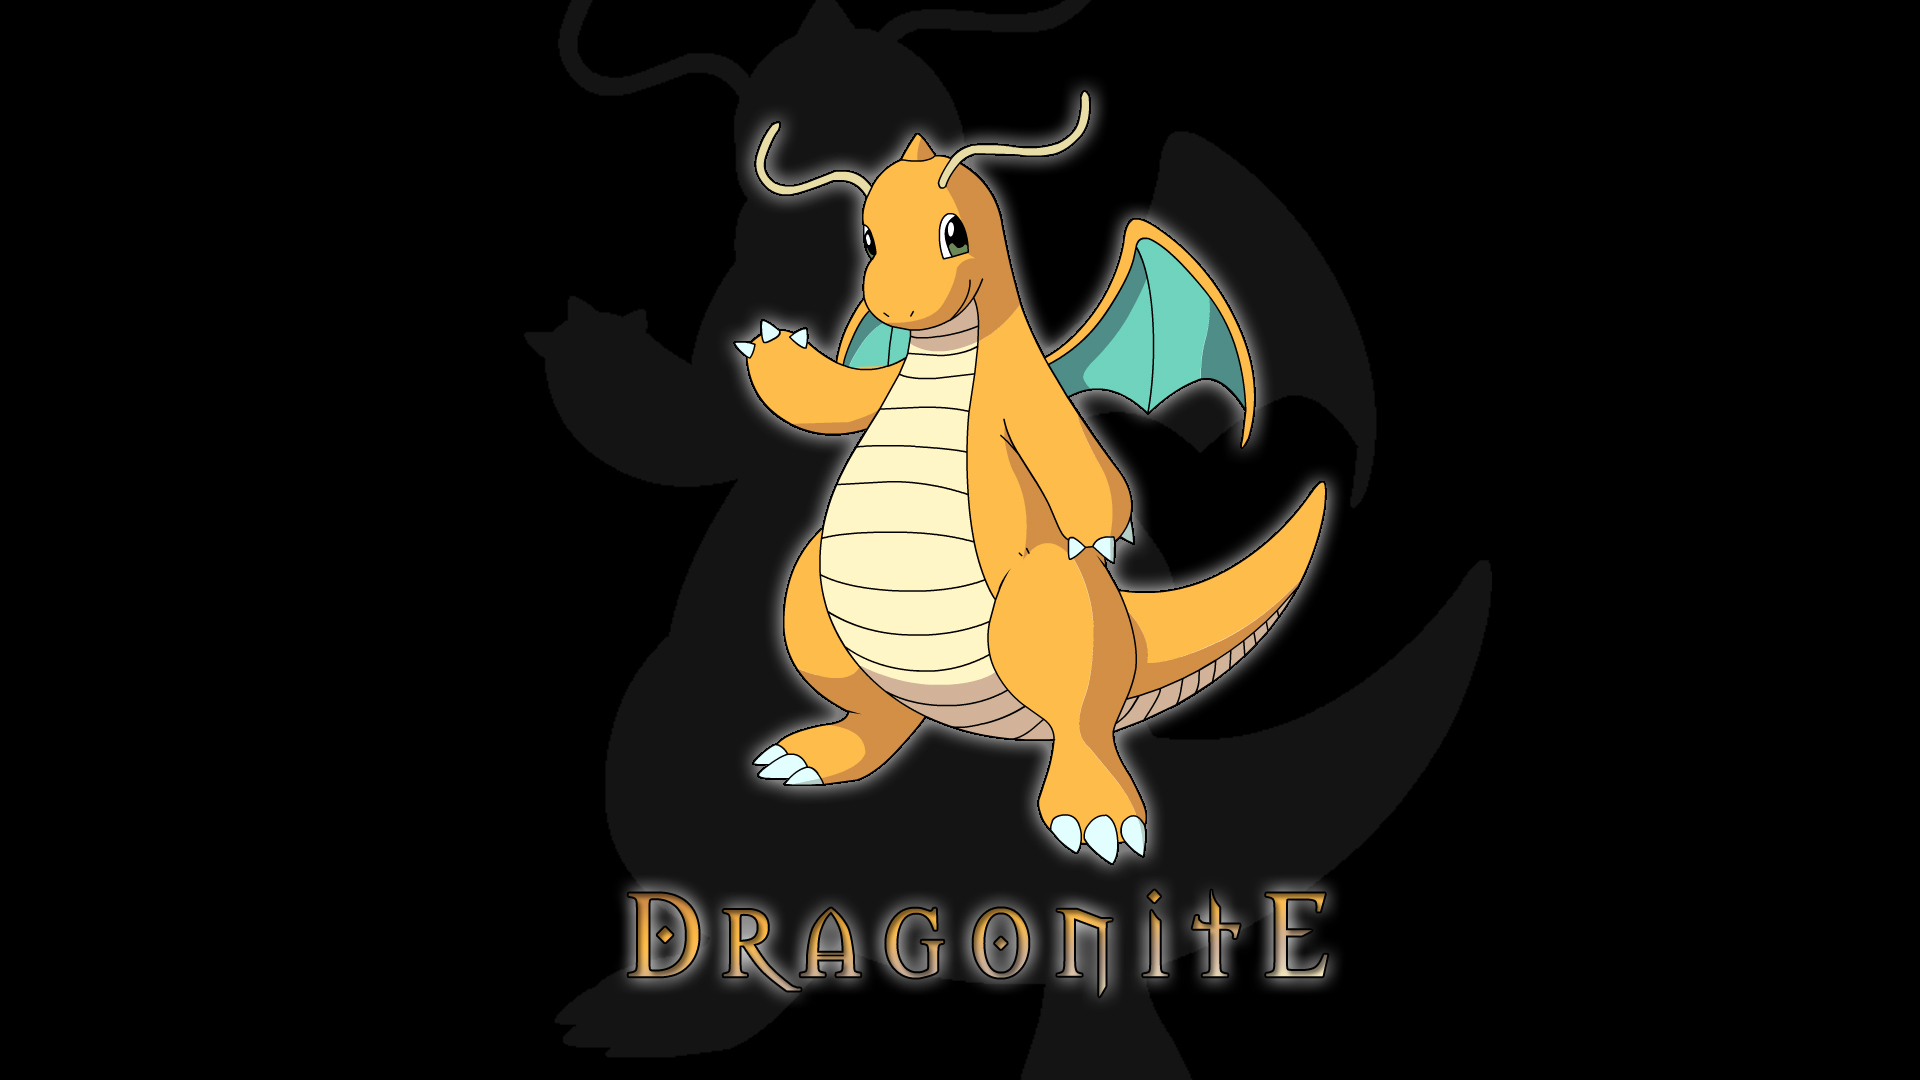 Dragon Definition: Dragonite Wallpapers Images Photos Pictures Backgrounds